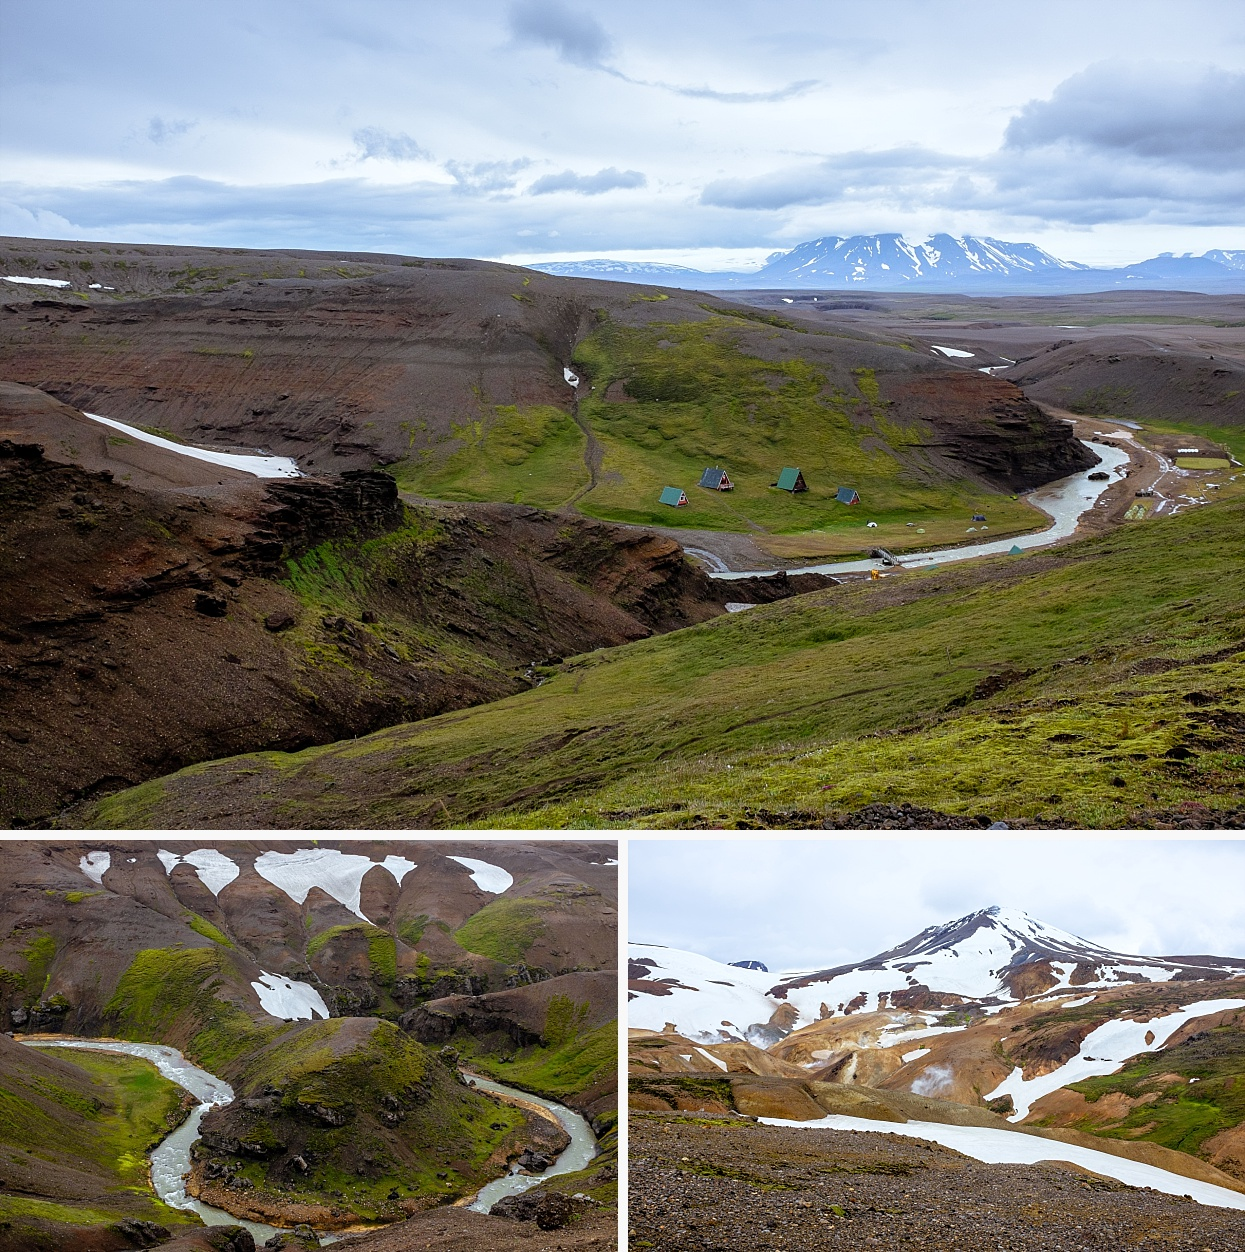 Kerlingarfjöll is a 1,477 m (4,846 ft) tall mountain range in Iceland situated in the Highlands of Iceland near the Kjölur highland road. They are part of a large tuya volcano system of 100 km2 (39 sq mi). The volcanic origin of these mountains is evidenced by the numerous hot springs and rivulets in the area, as well as red volcanic rhyolite stone the mountains are composed of. Minerals that have emerged from the hot springs also color the ground yellow, red and green.